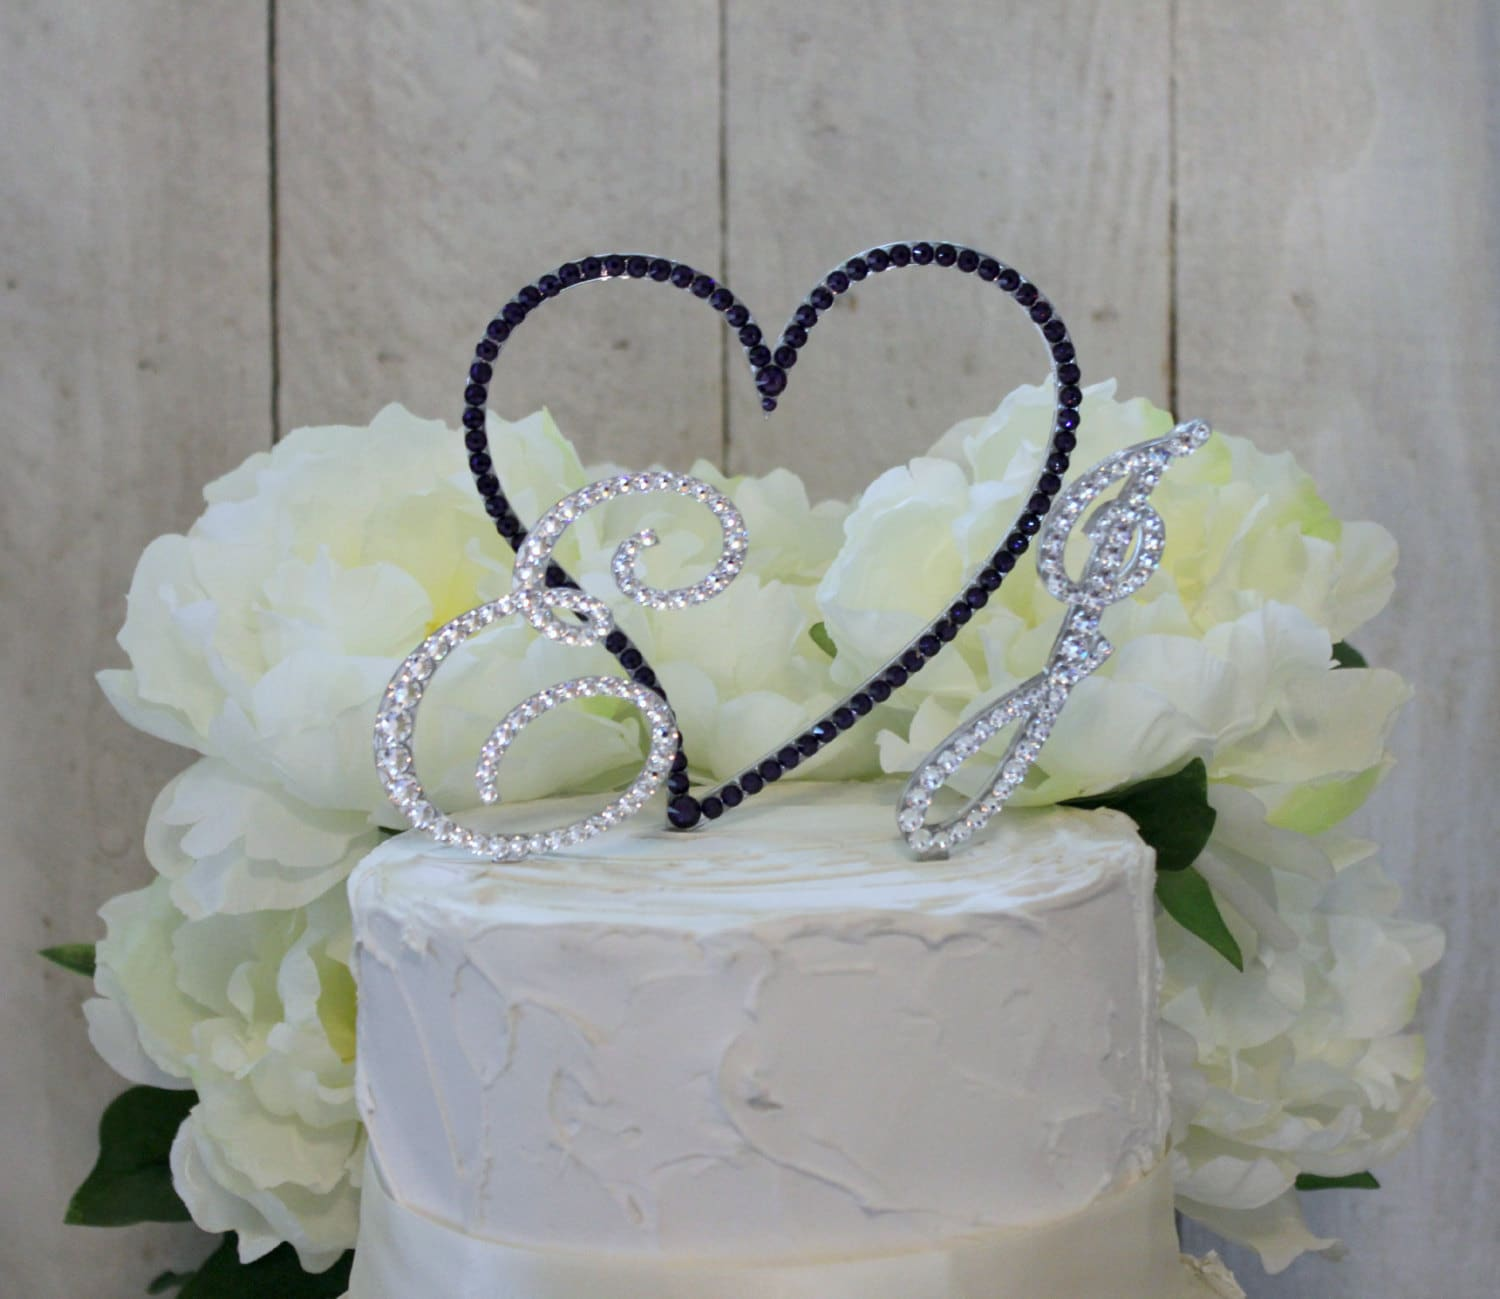 Monogram 2 Initial & Heart Wedding Cake Topper by